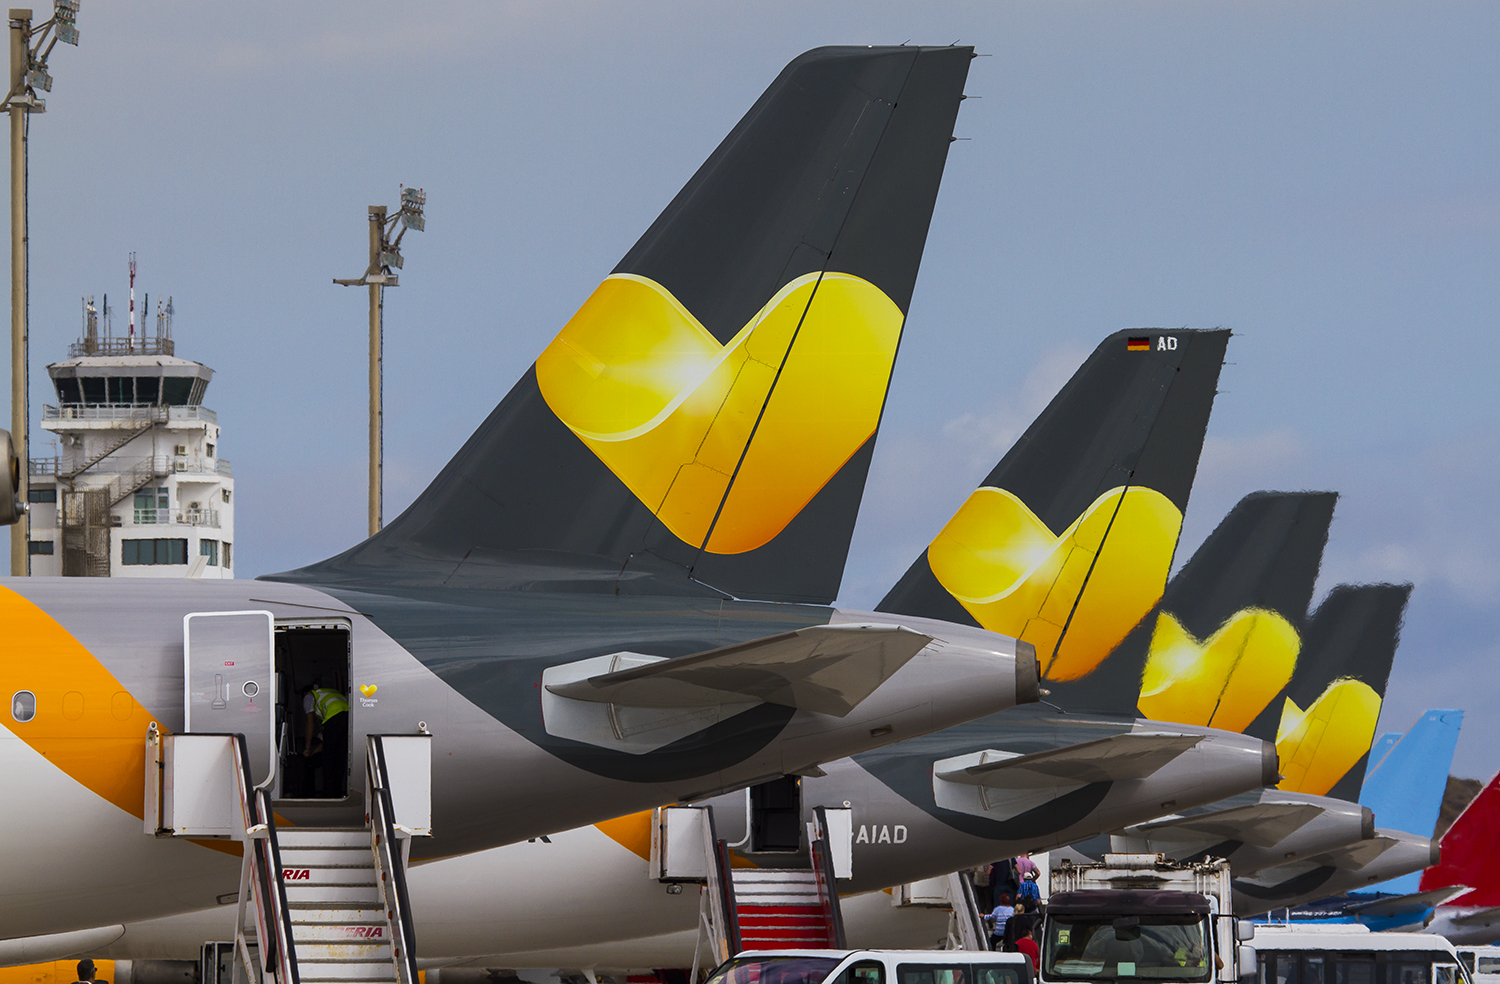 Thomas Cook posts revenue rise ahead of key summer season